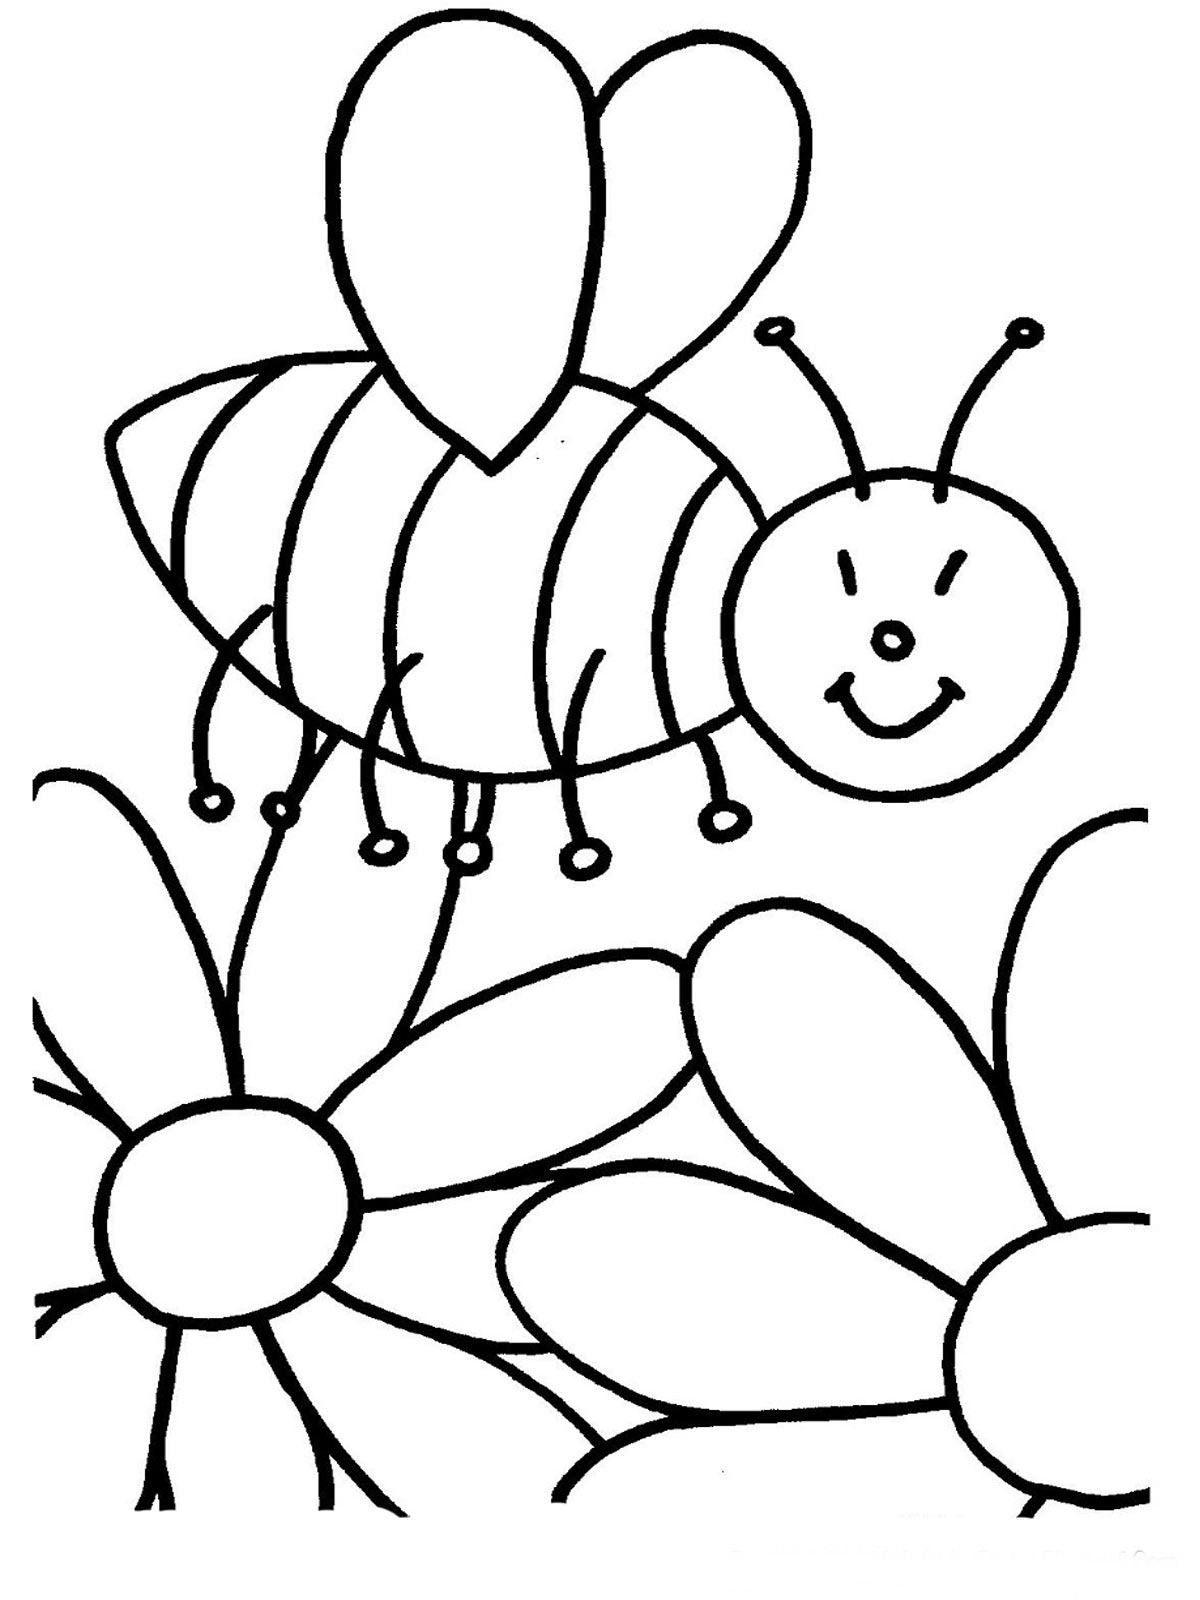 Bee and butterfly coloring pages - Flower Wallpaper Bees Coloring Pages Realistic Realistic Coloring Pages